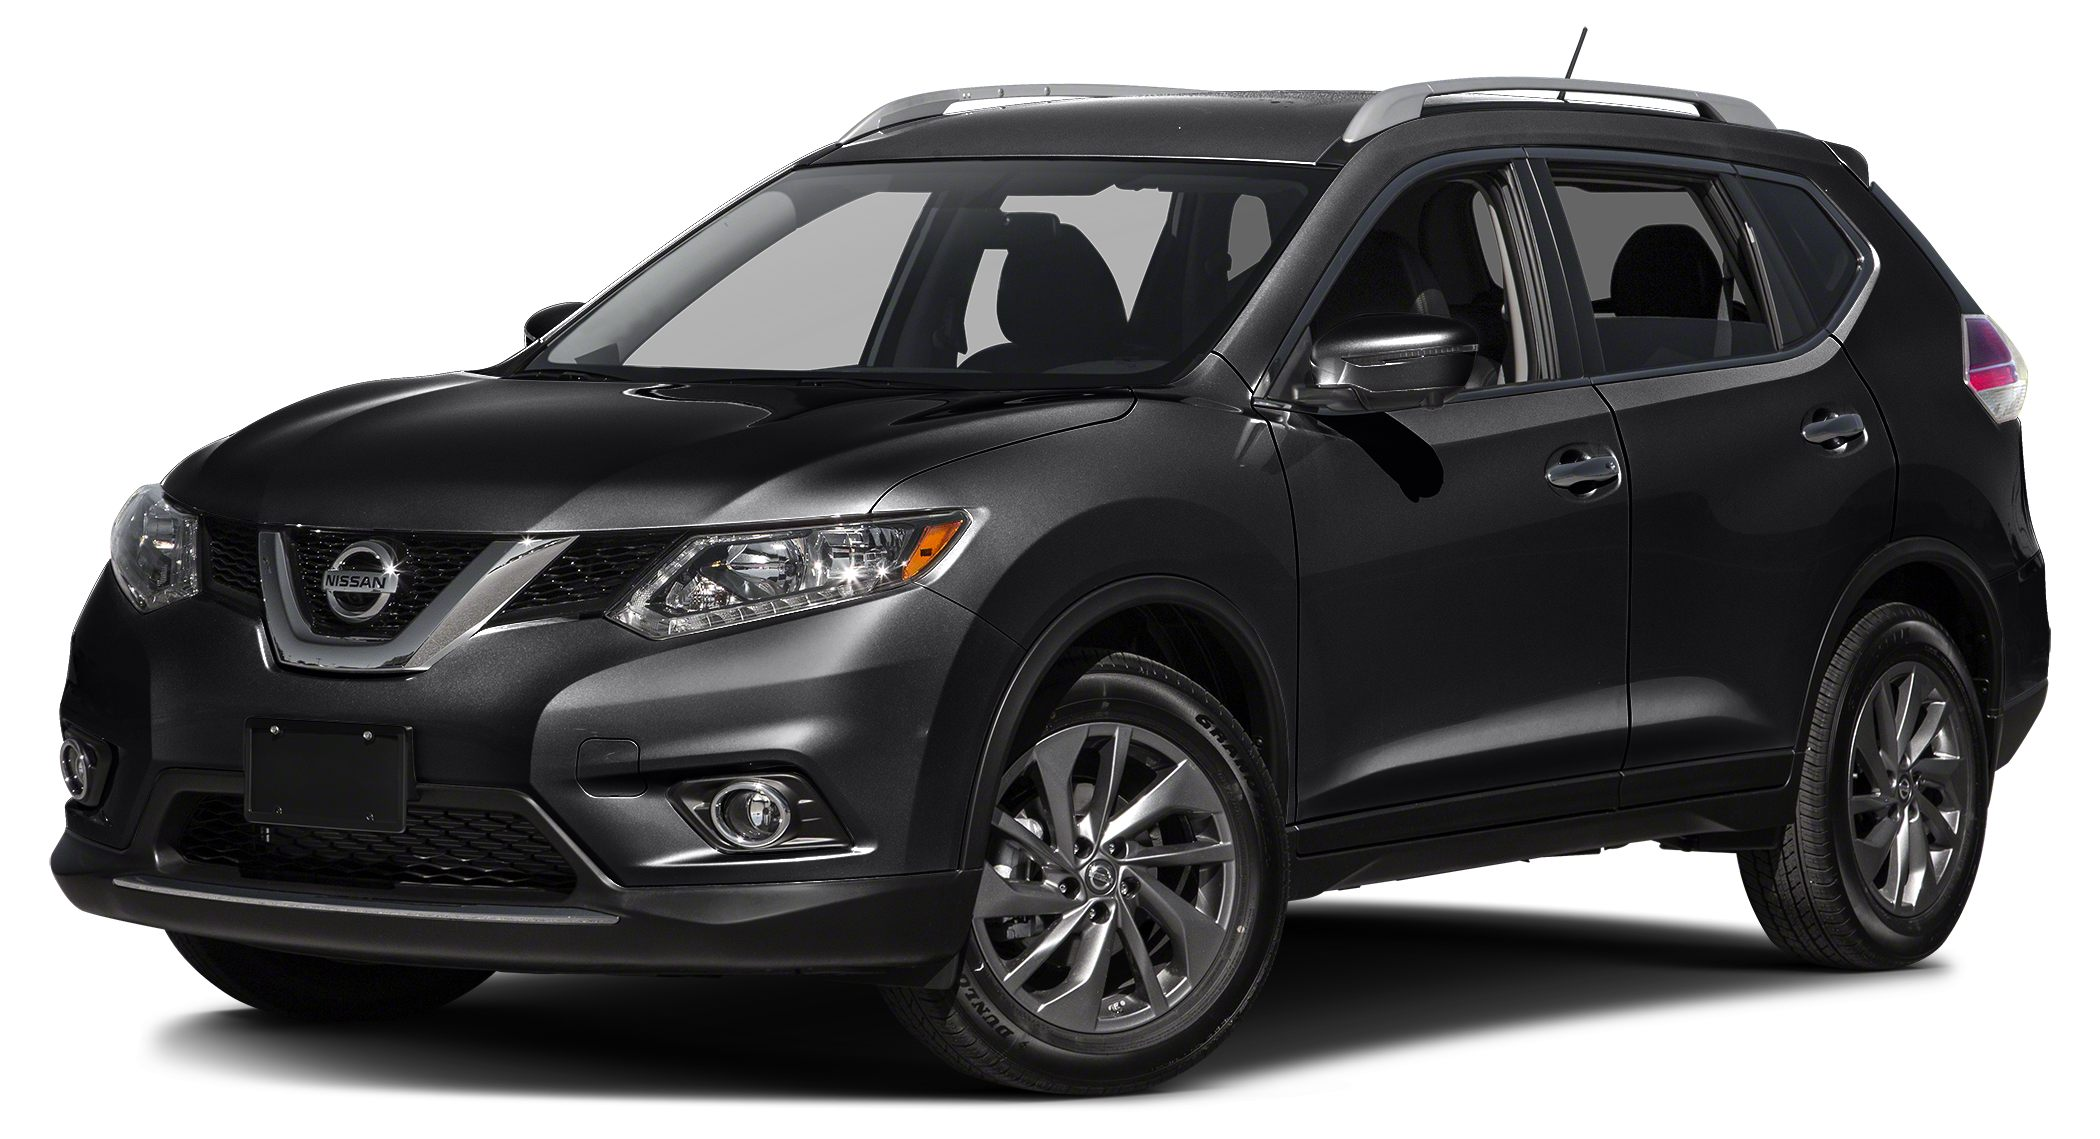 2016 Nissan Rogue SL CARFAX 1-Owner GREAT MILES 10843 SL trim FUEL EFFICIENT 33 MPG Hwy26 MPG